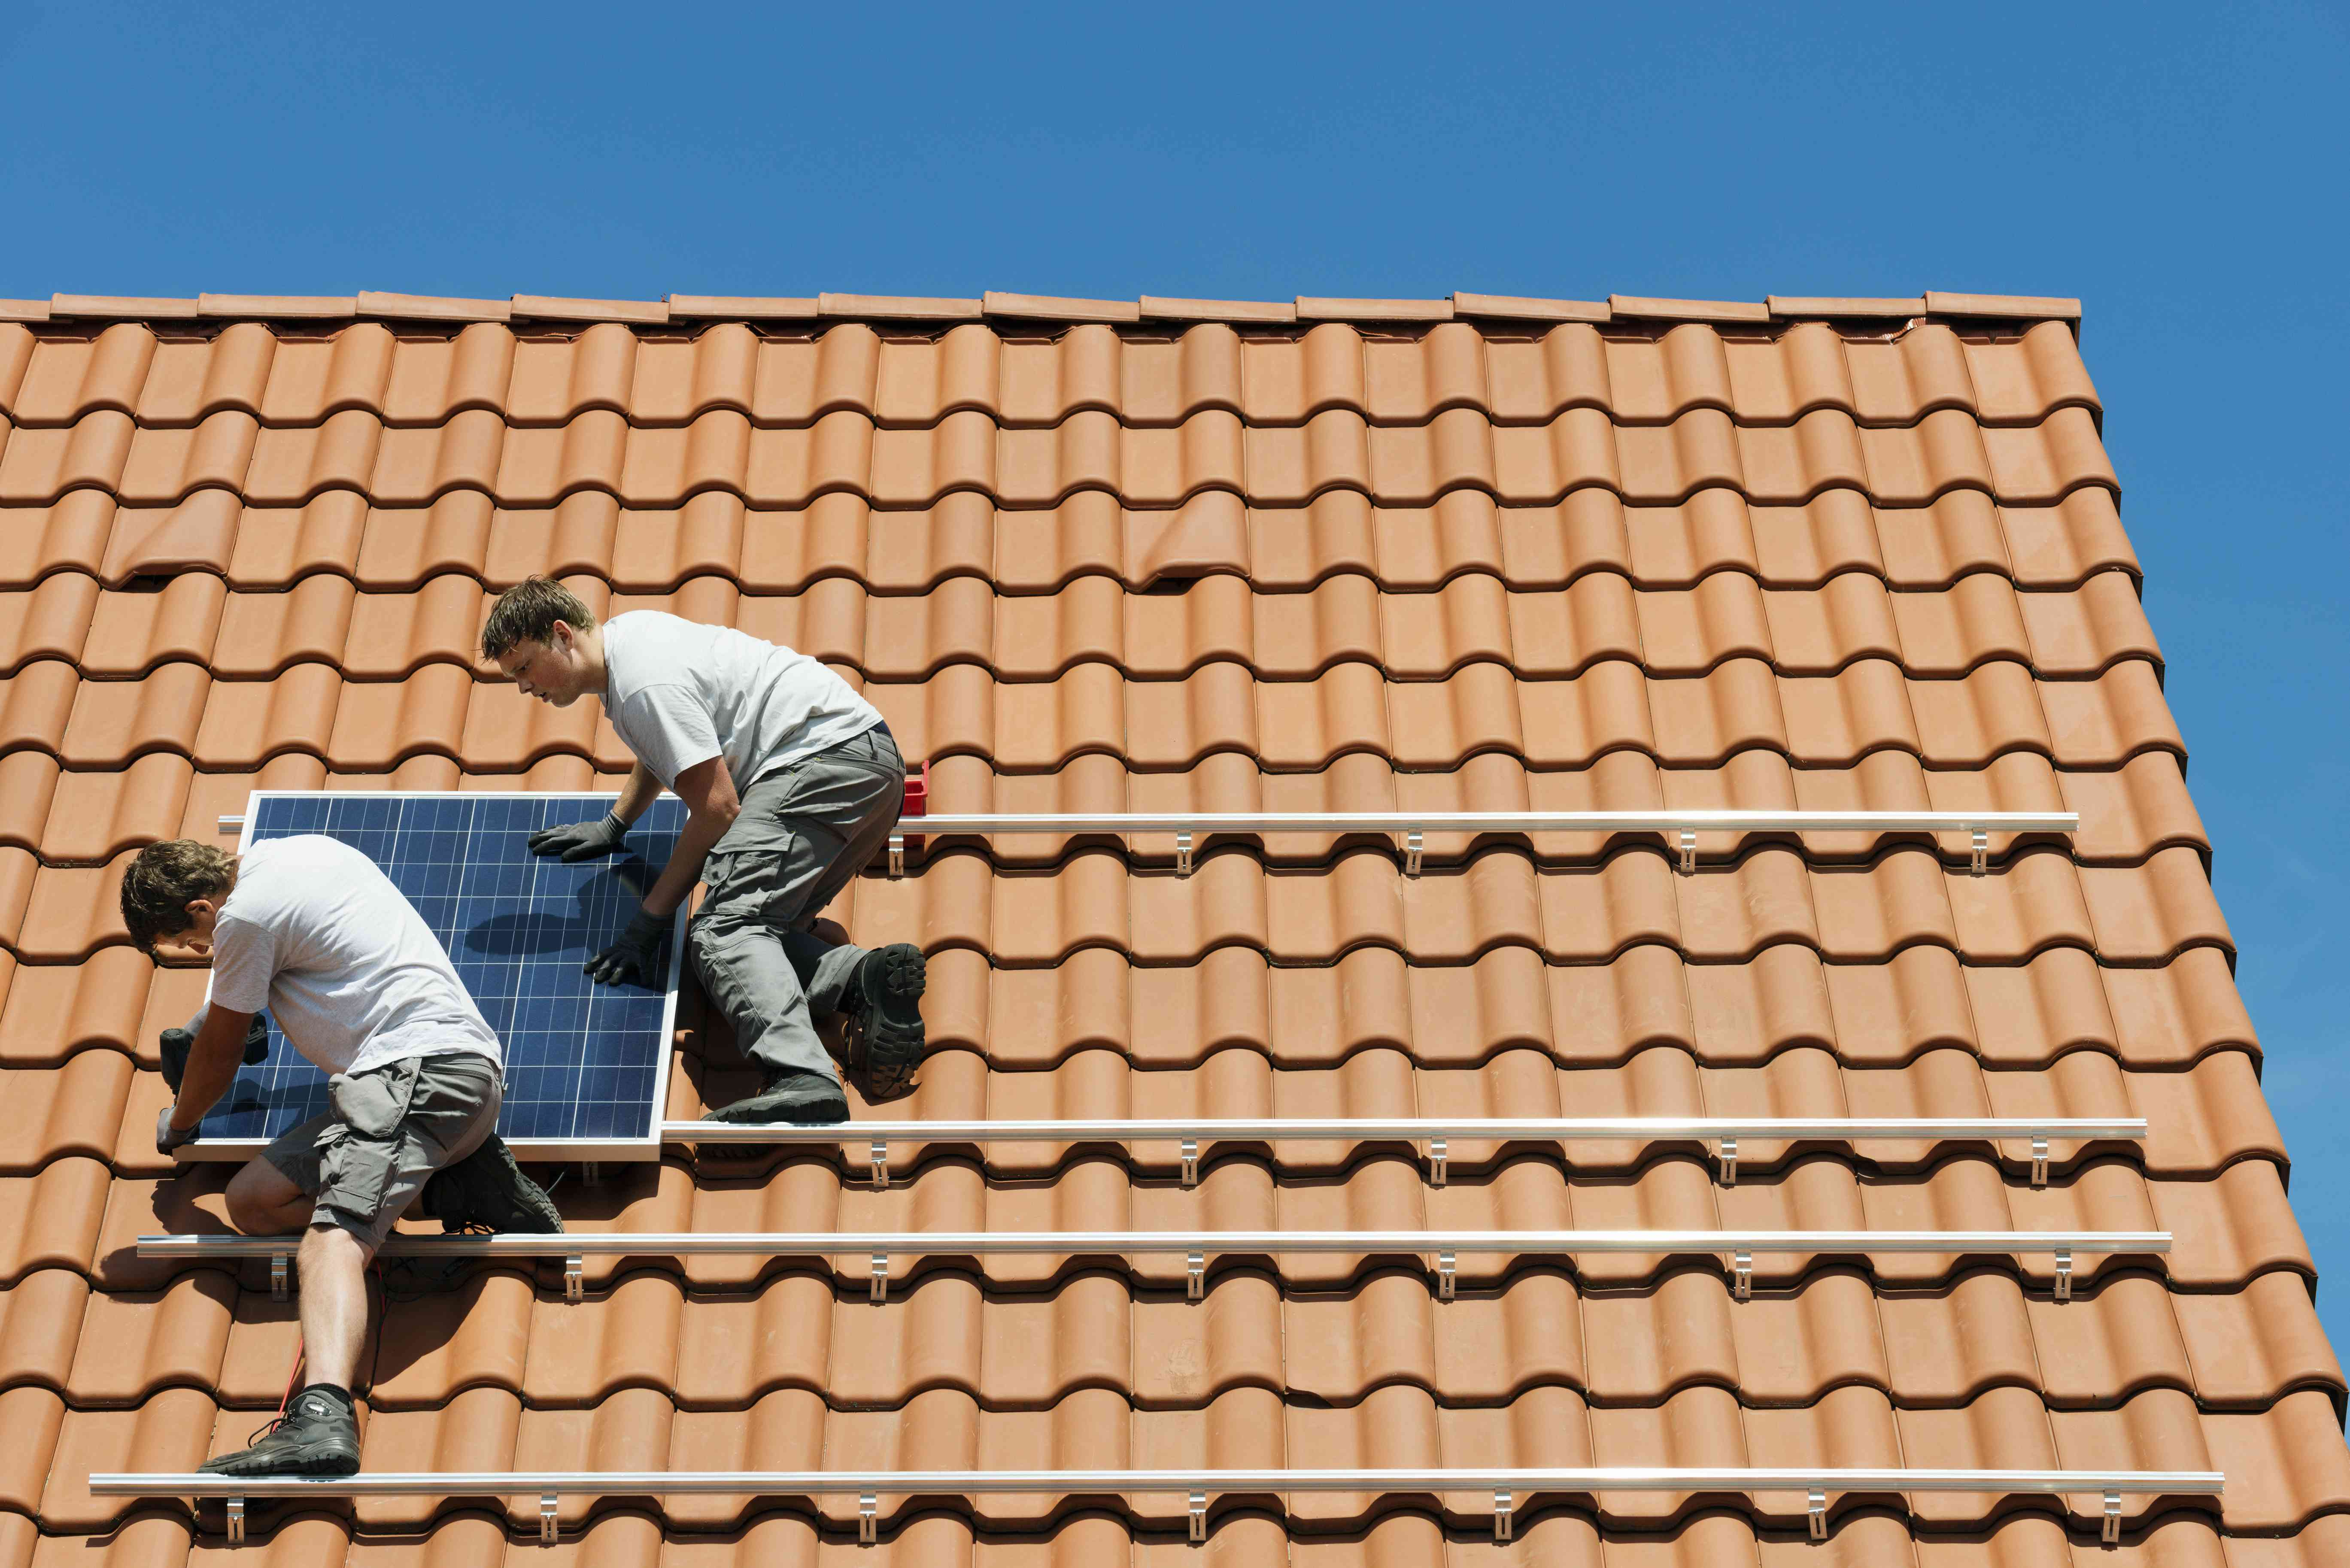 Workers installing solar panel on roof framework of new home, Netherlands